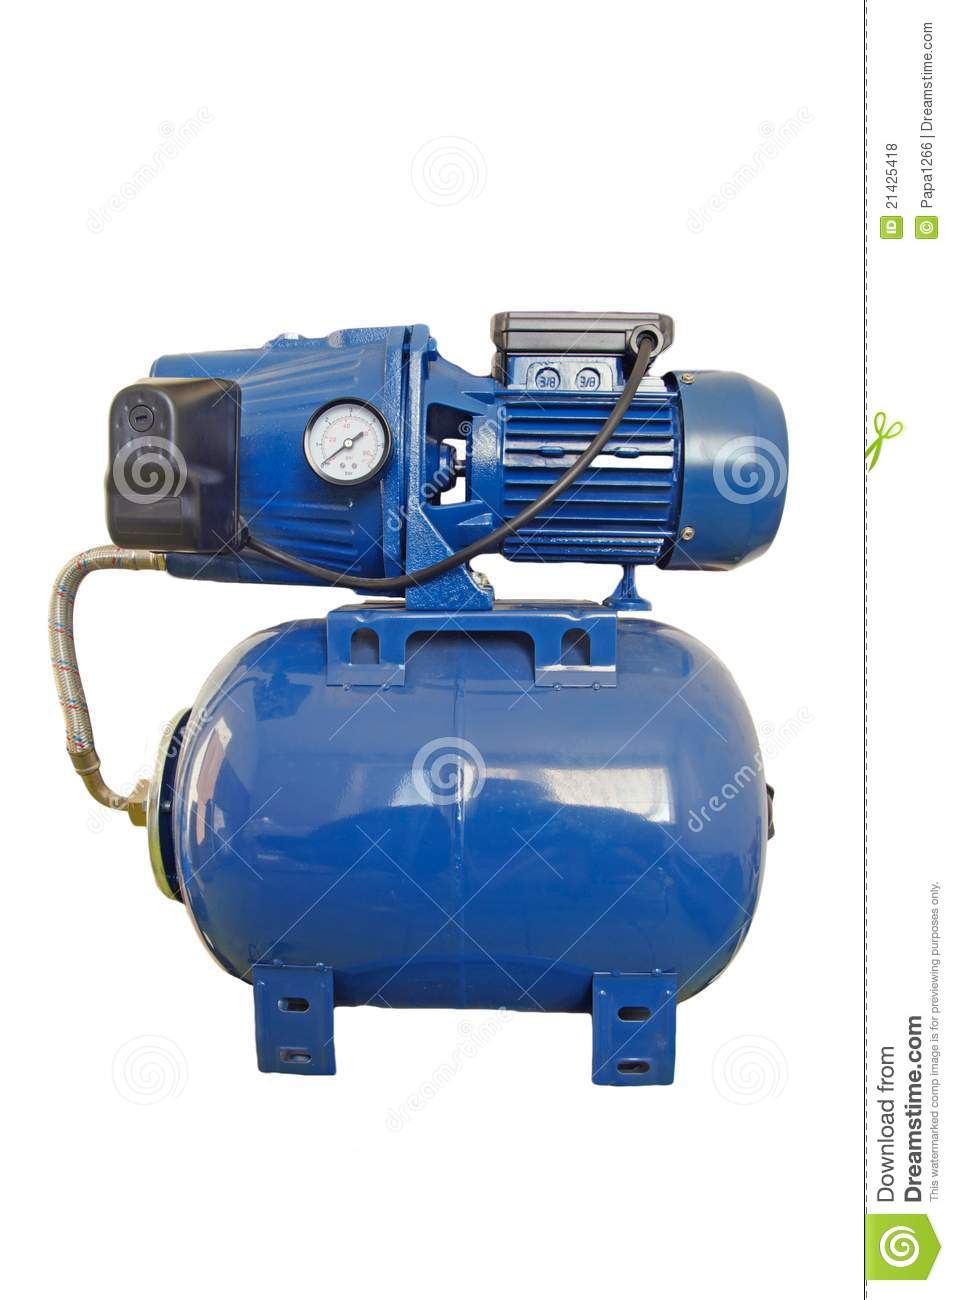 automatic water pump in the basement royalty free stock photos image